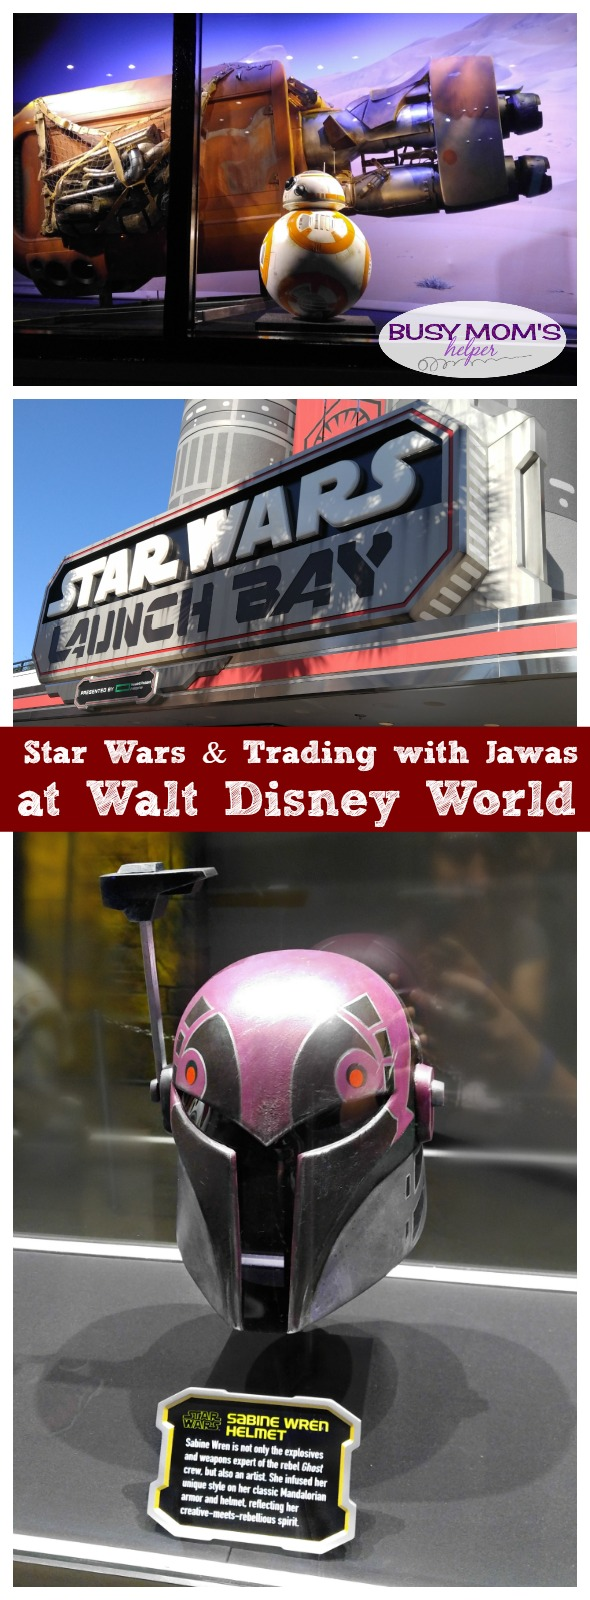 Star Wars & Trading with Jawas at Walt Disney World